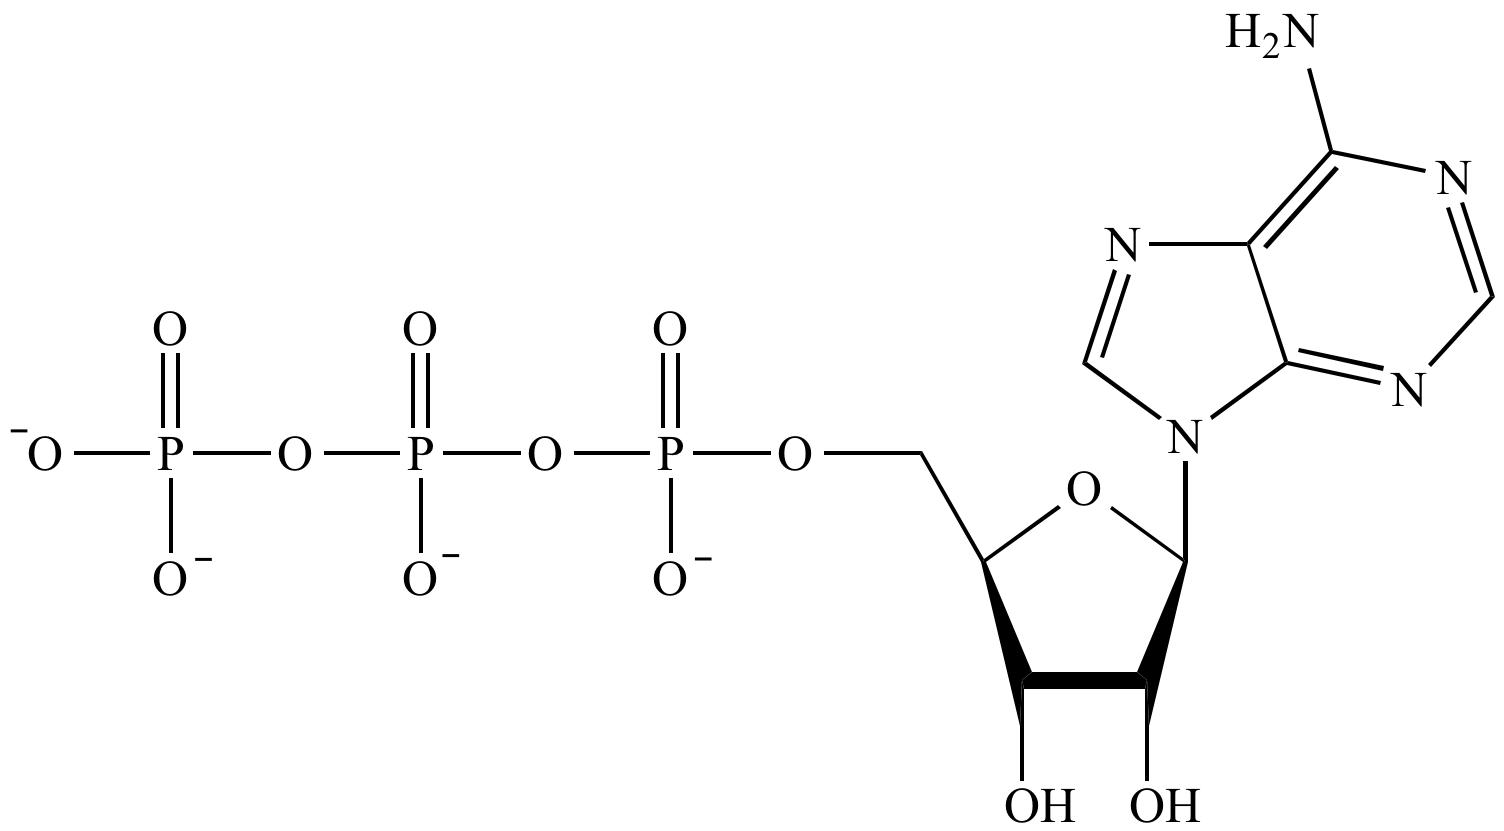 diagram of the atp molecule chicken skeleton illustrated glossary organic chemistry phosphate group